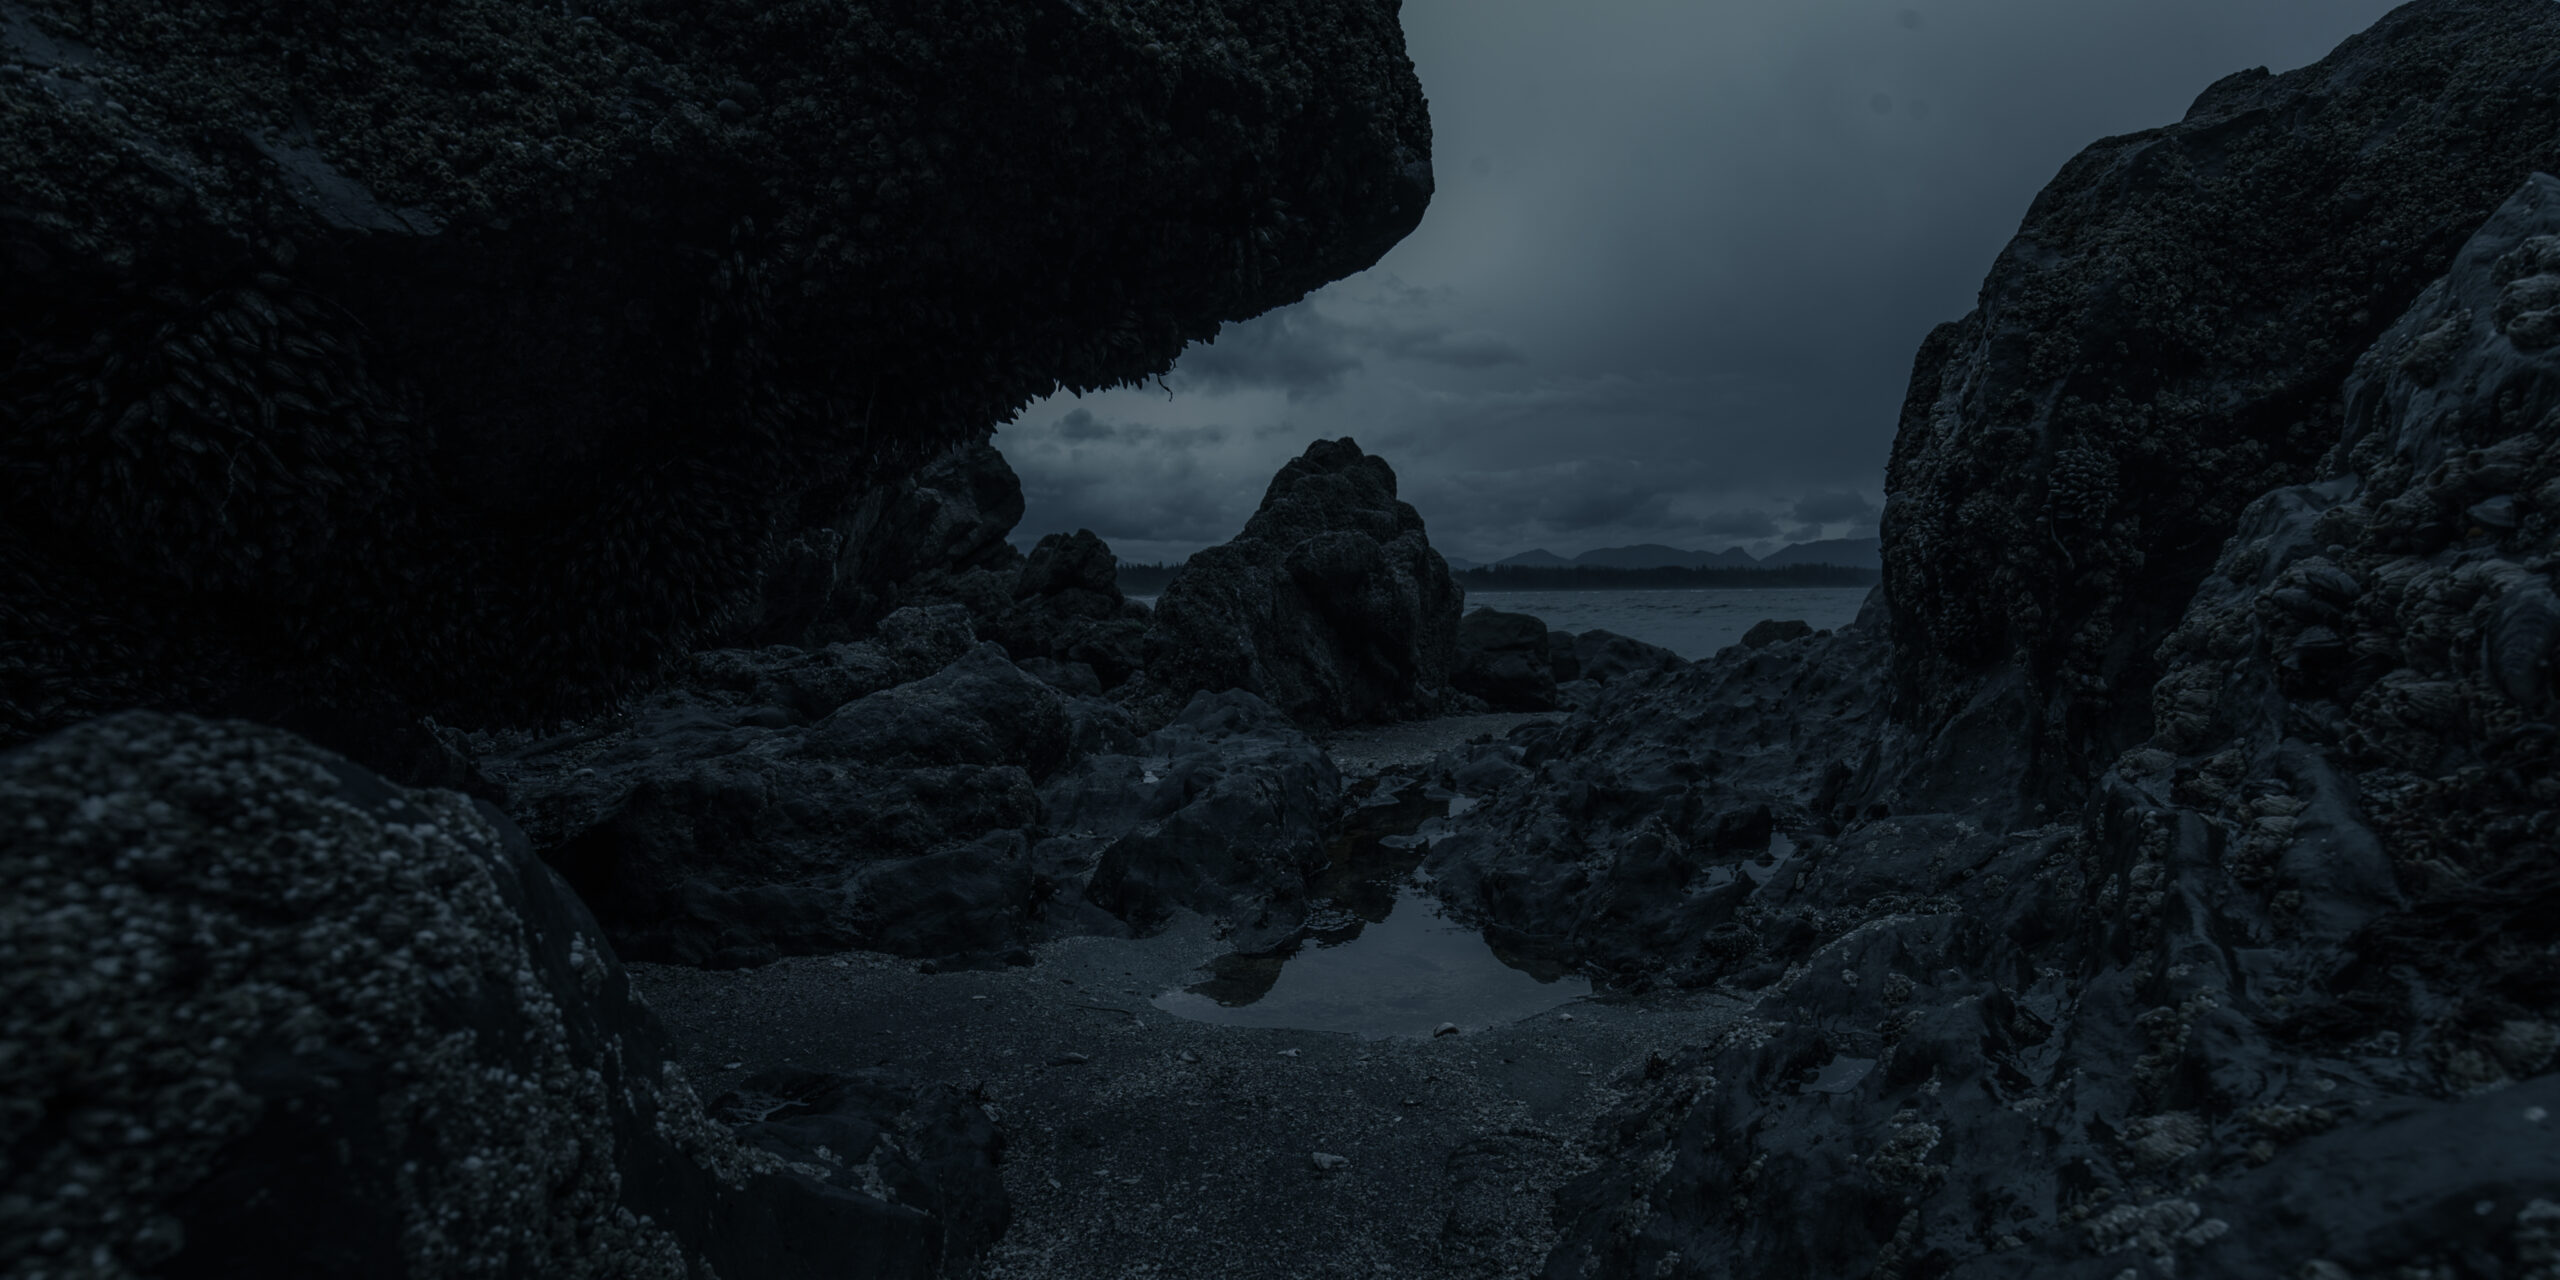 Rough Shore with Rocks